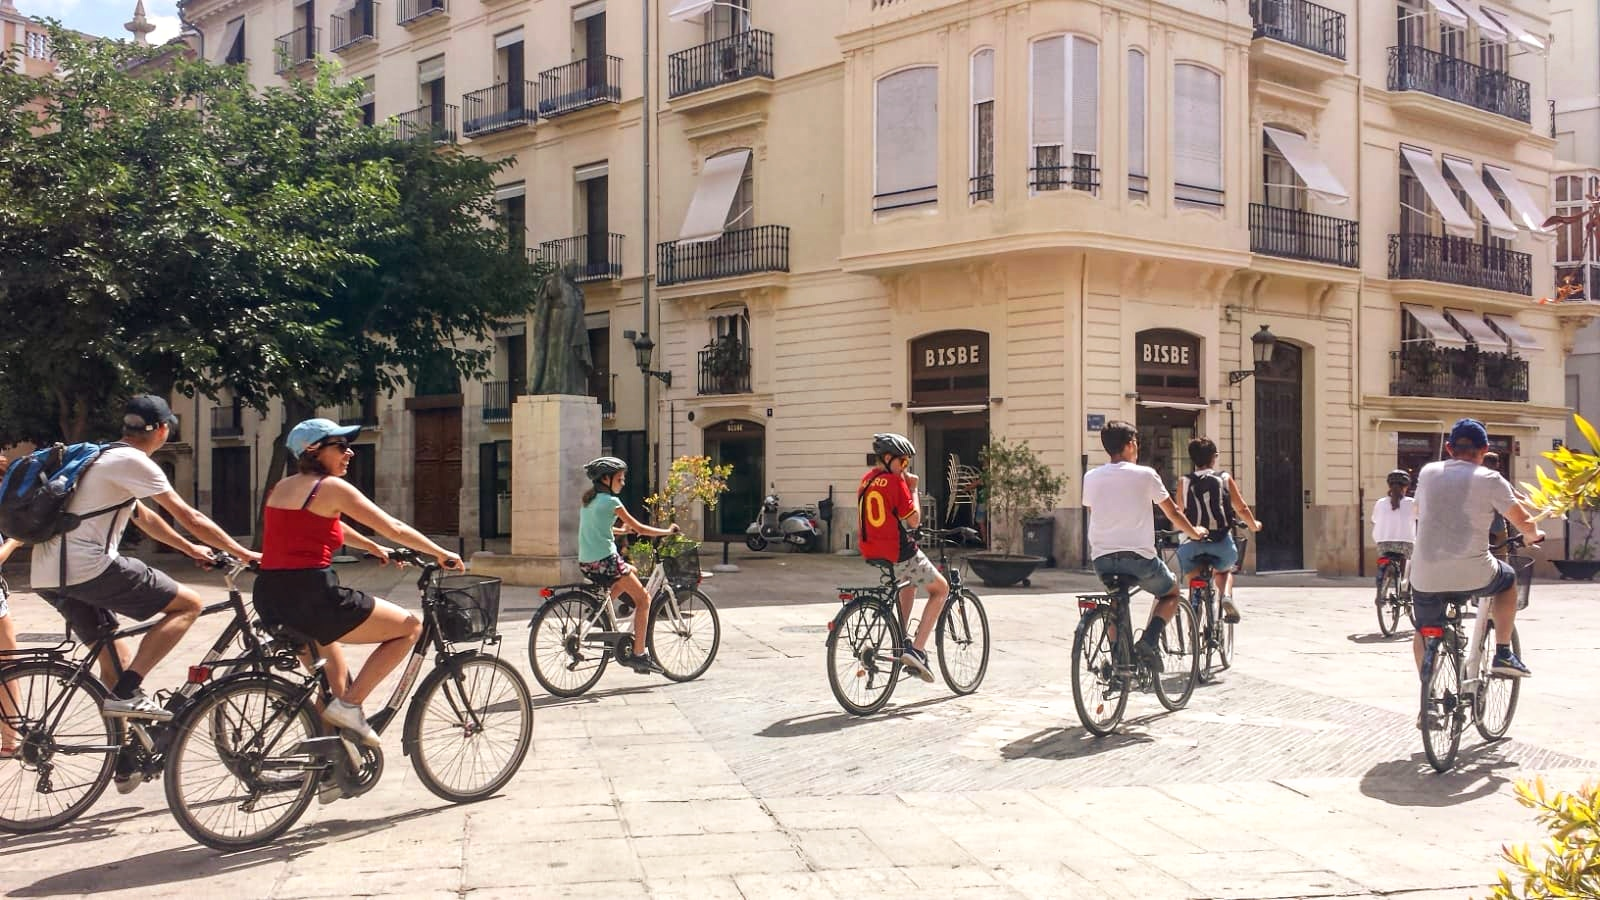 Cyclists in the city of Valencia, Spain